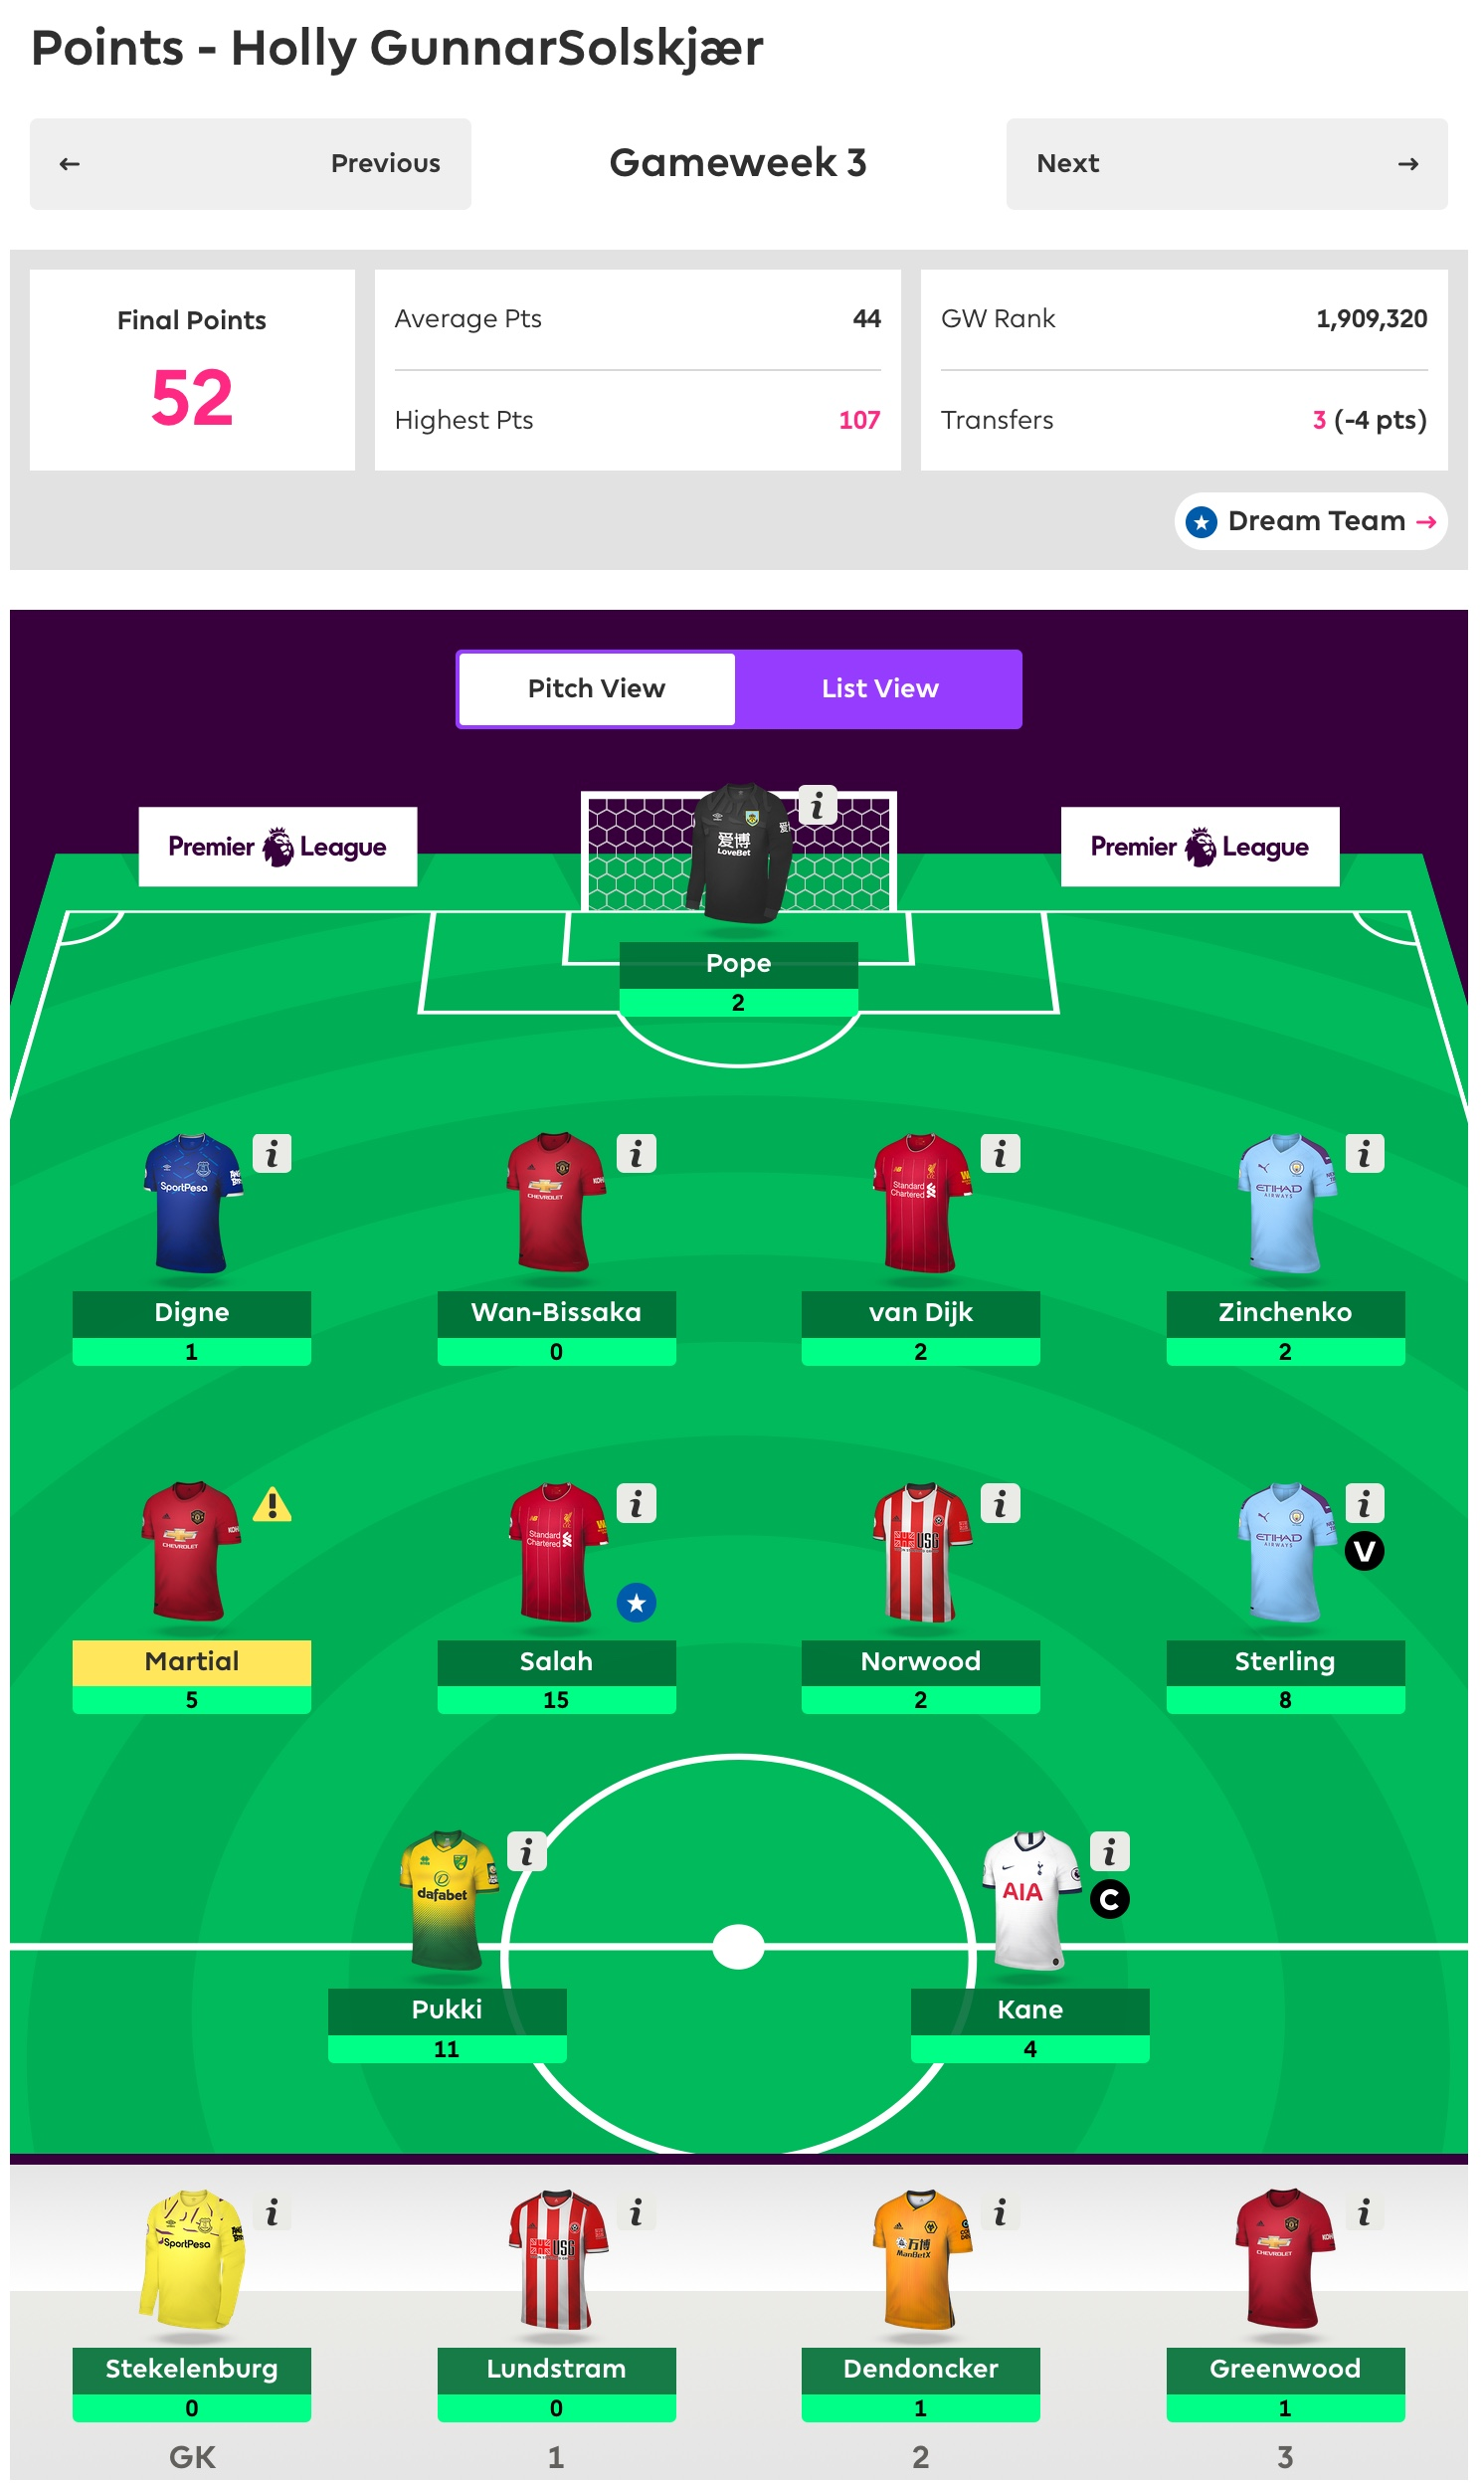 Gameweek 3 Review